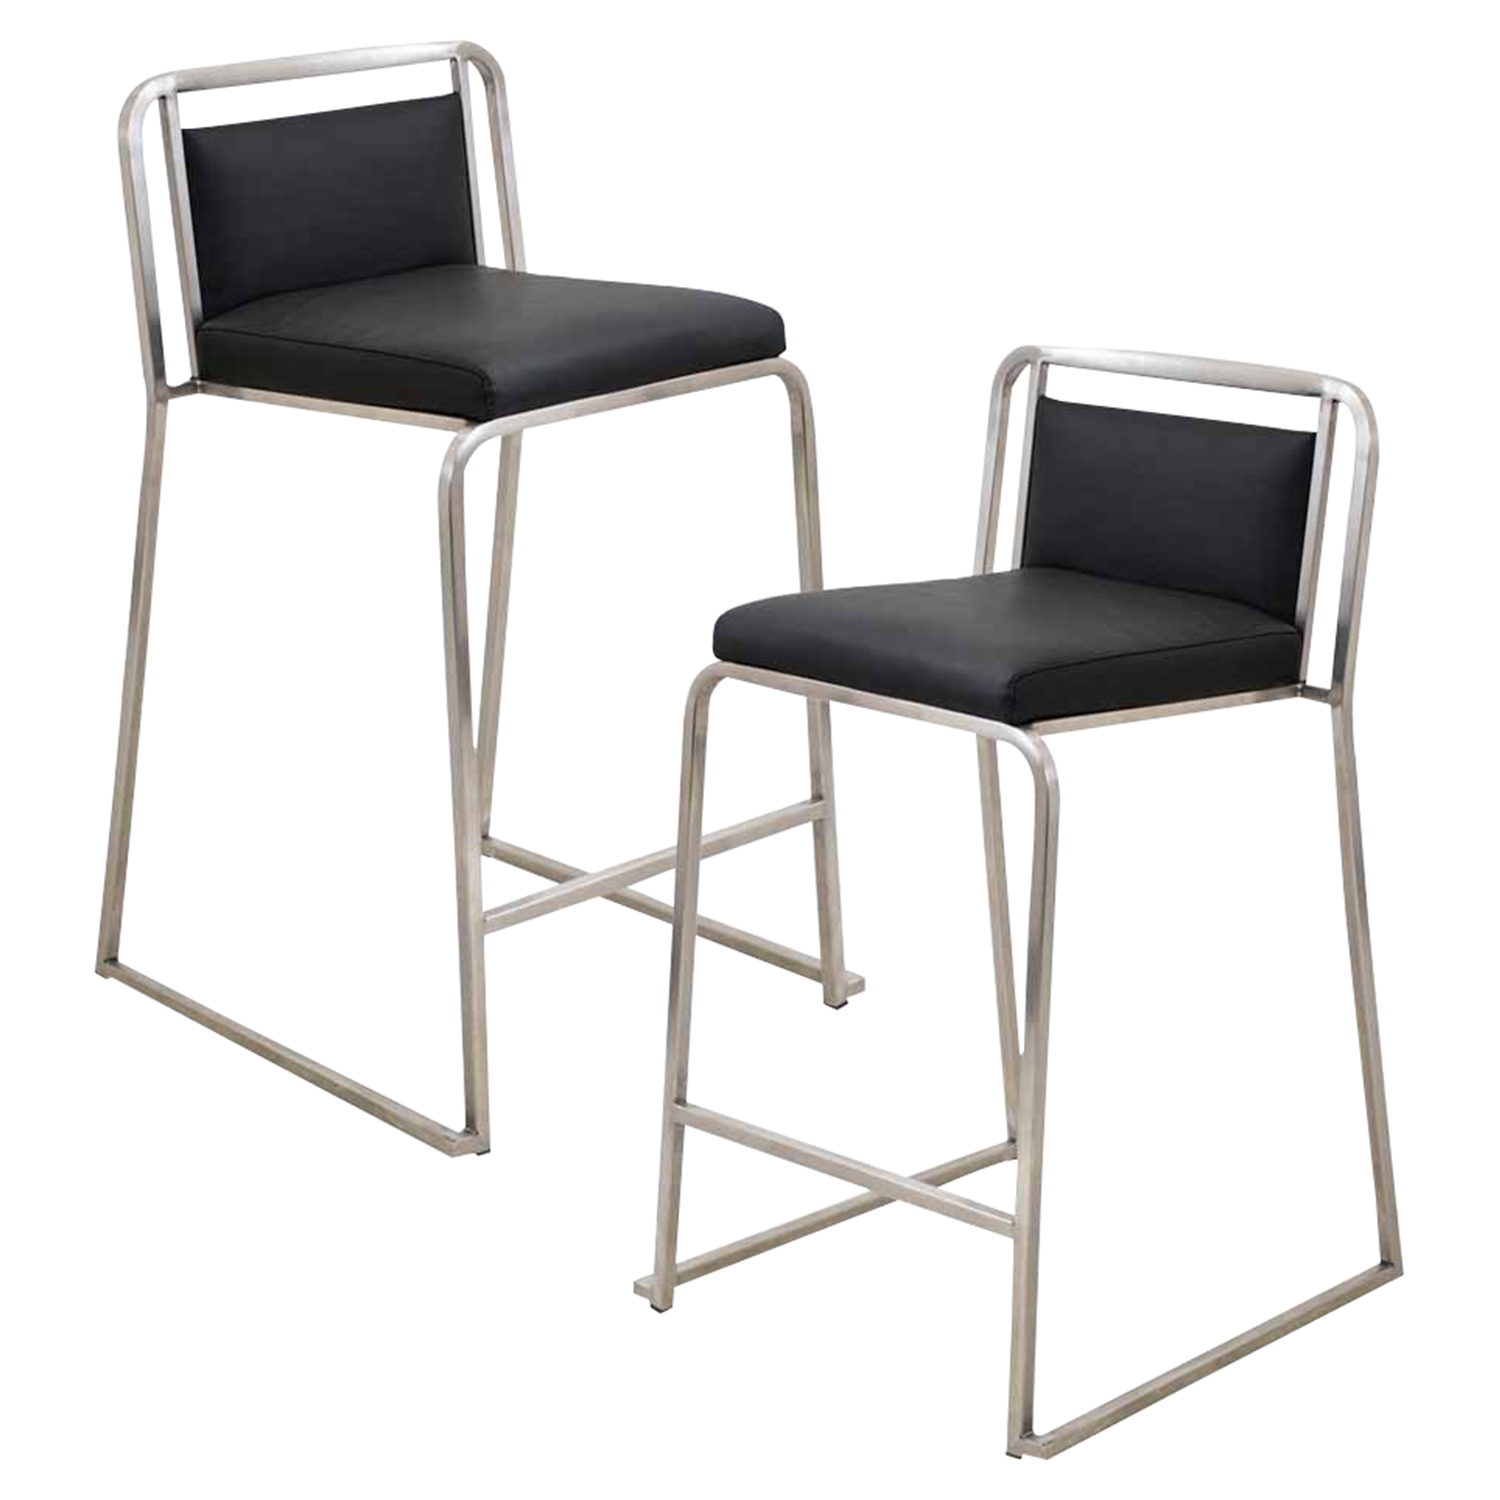 Cascade Stackable Counter Stool - Black (Set of 2) - LMS-CS-CASC-BK2